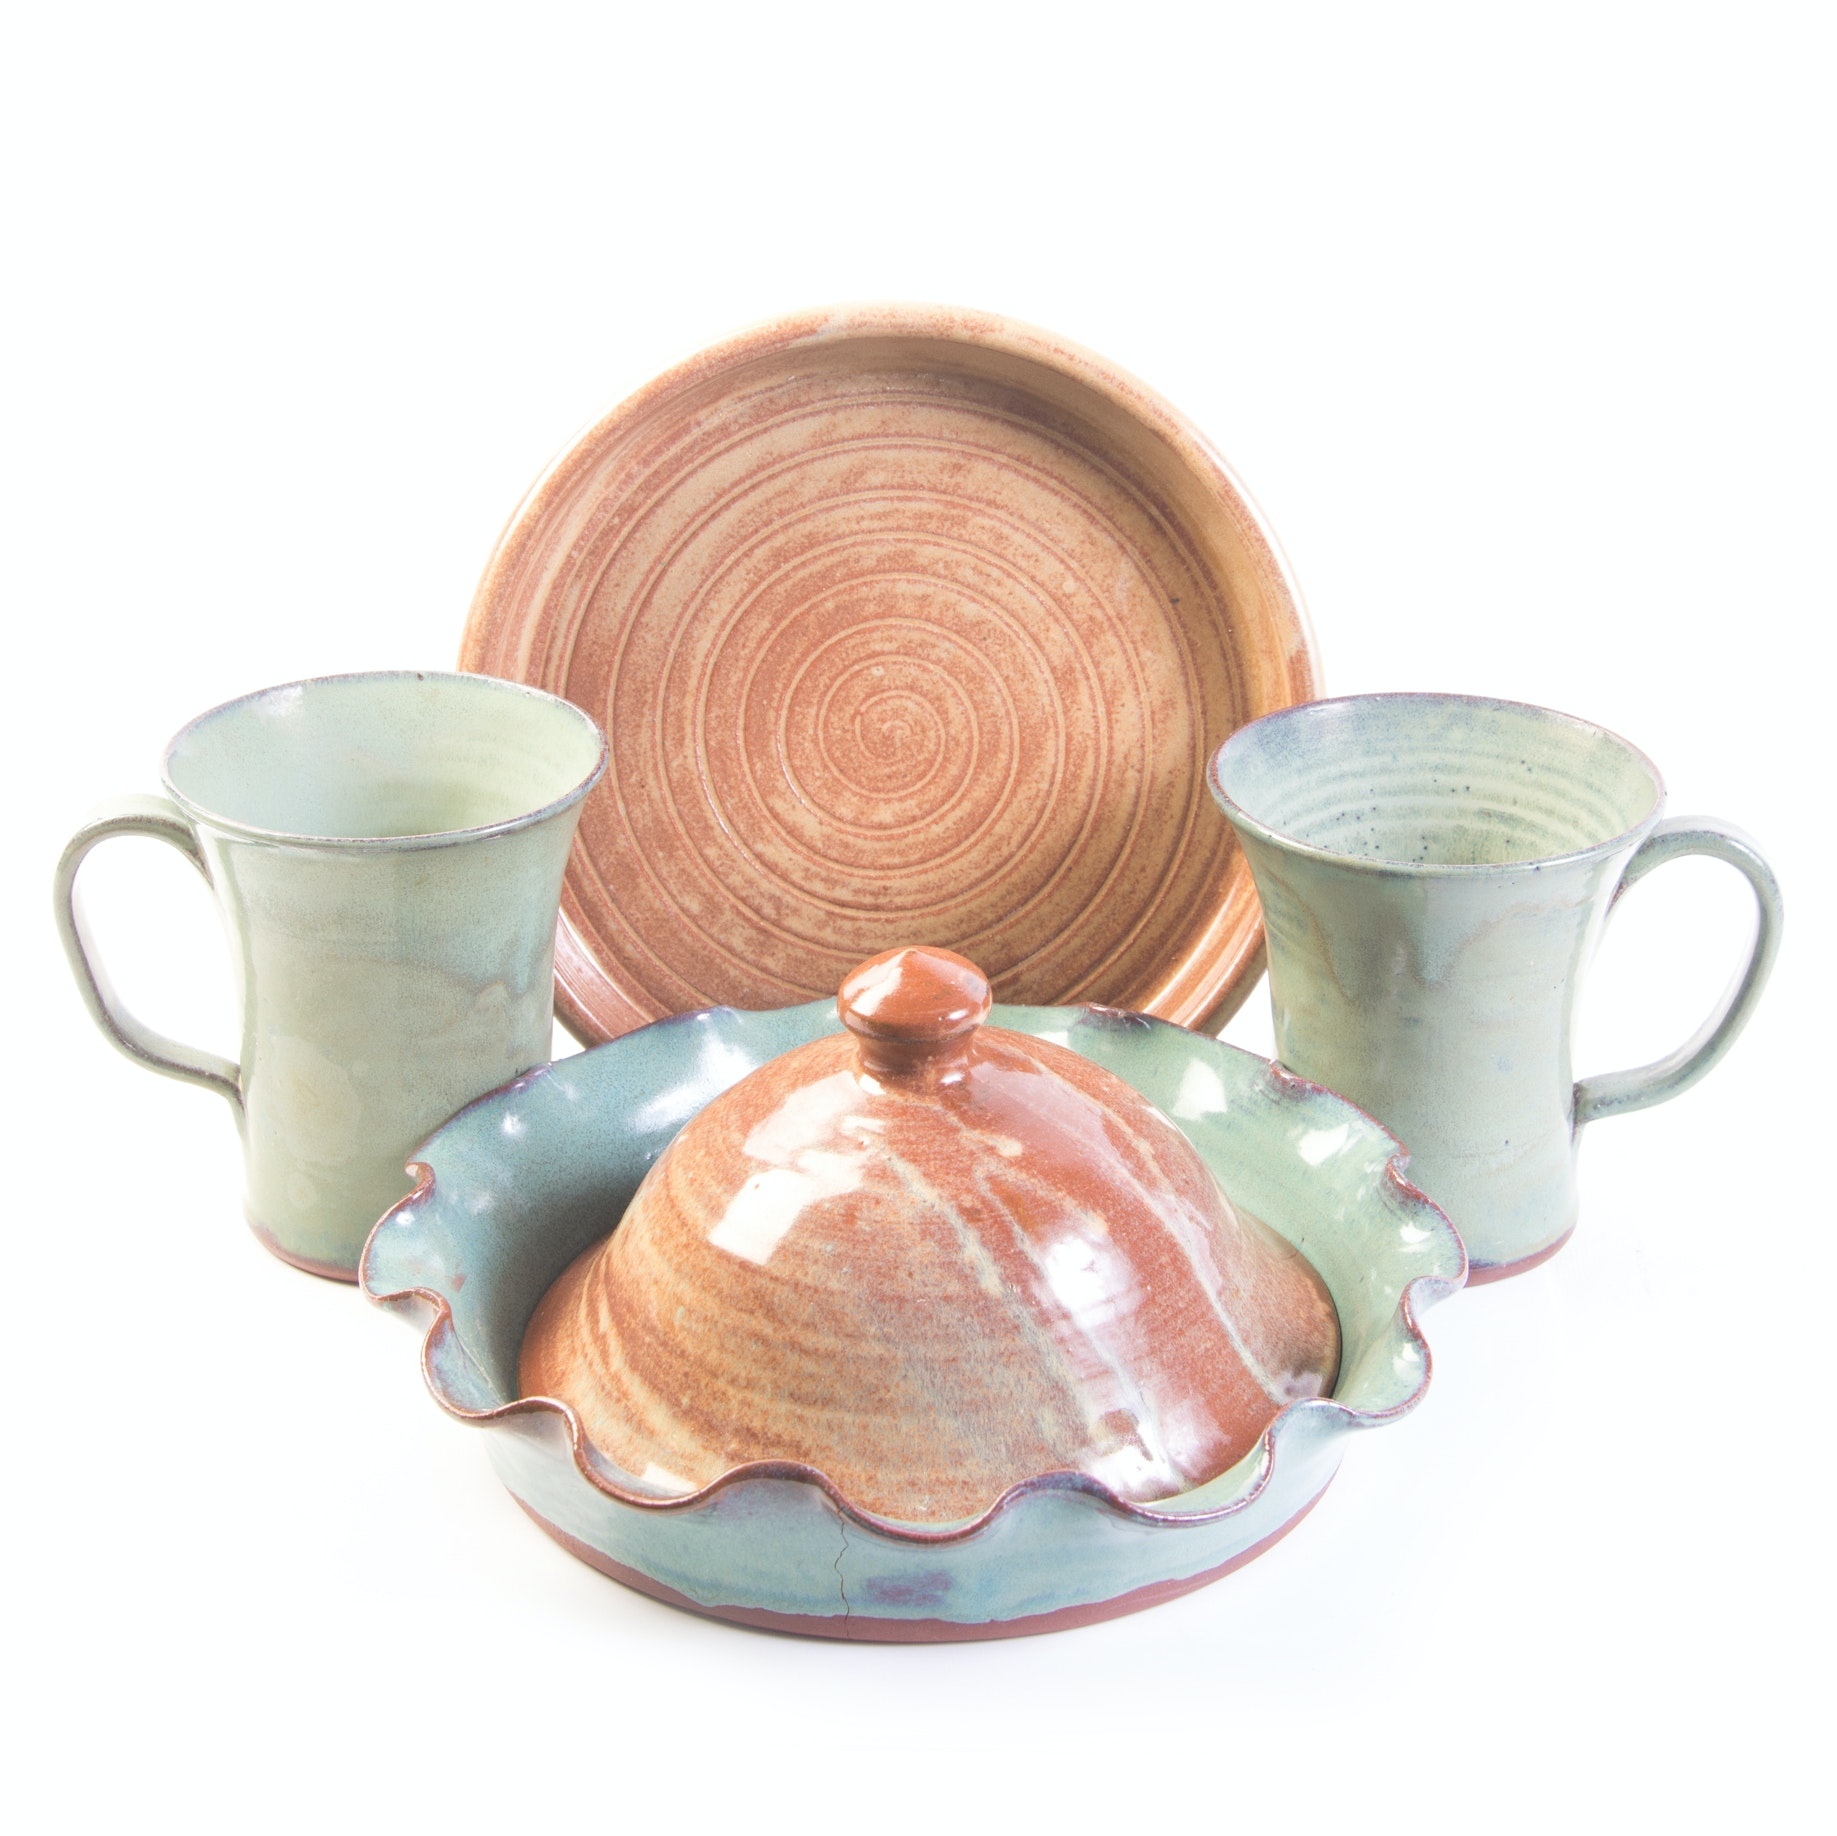 Hand Thrown Stoneware by Oakland Pottery